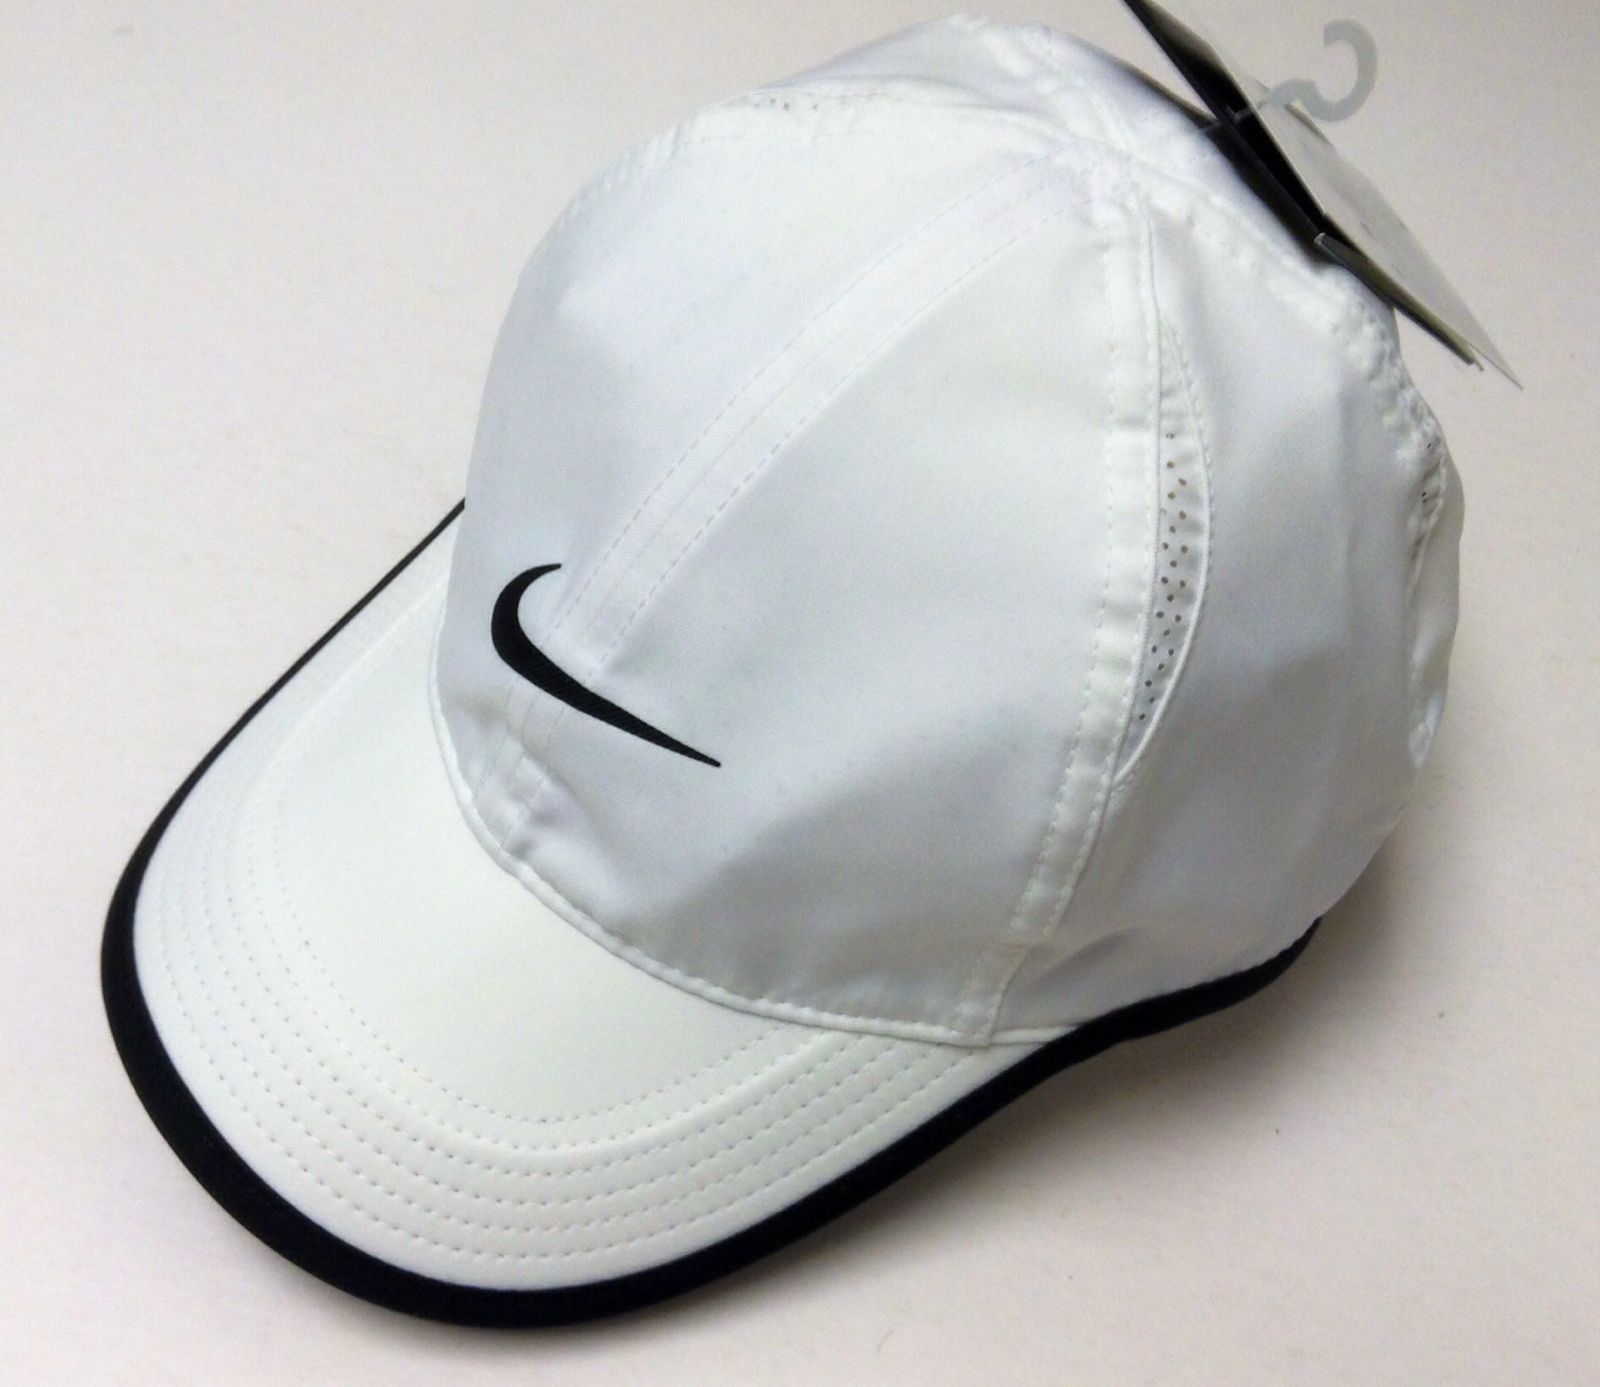 eb32ca2c8 Details about NWT NIKE Women's Dri-Fit Feather Light Running Tennis ...